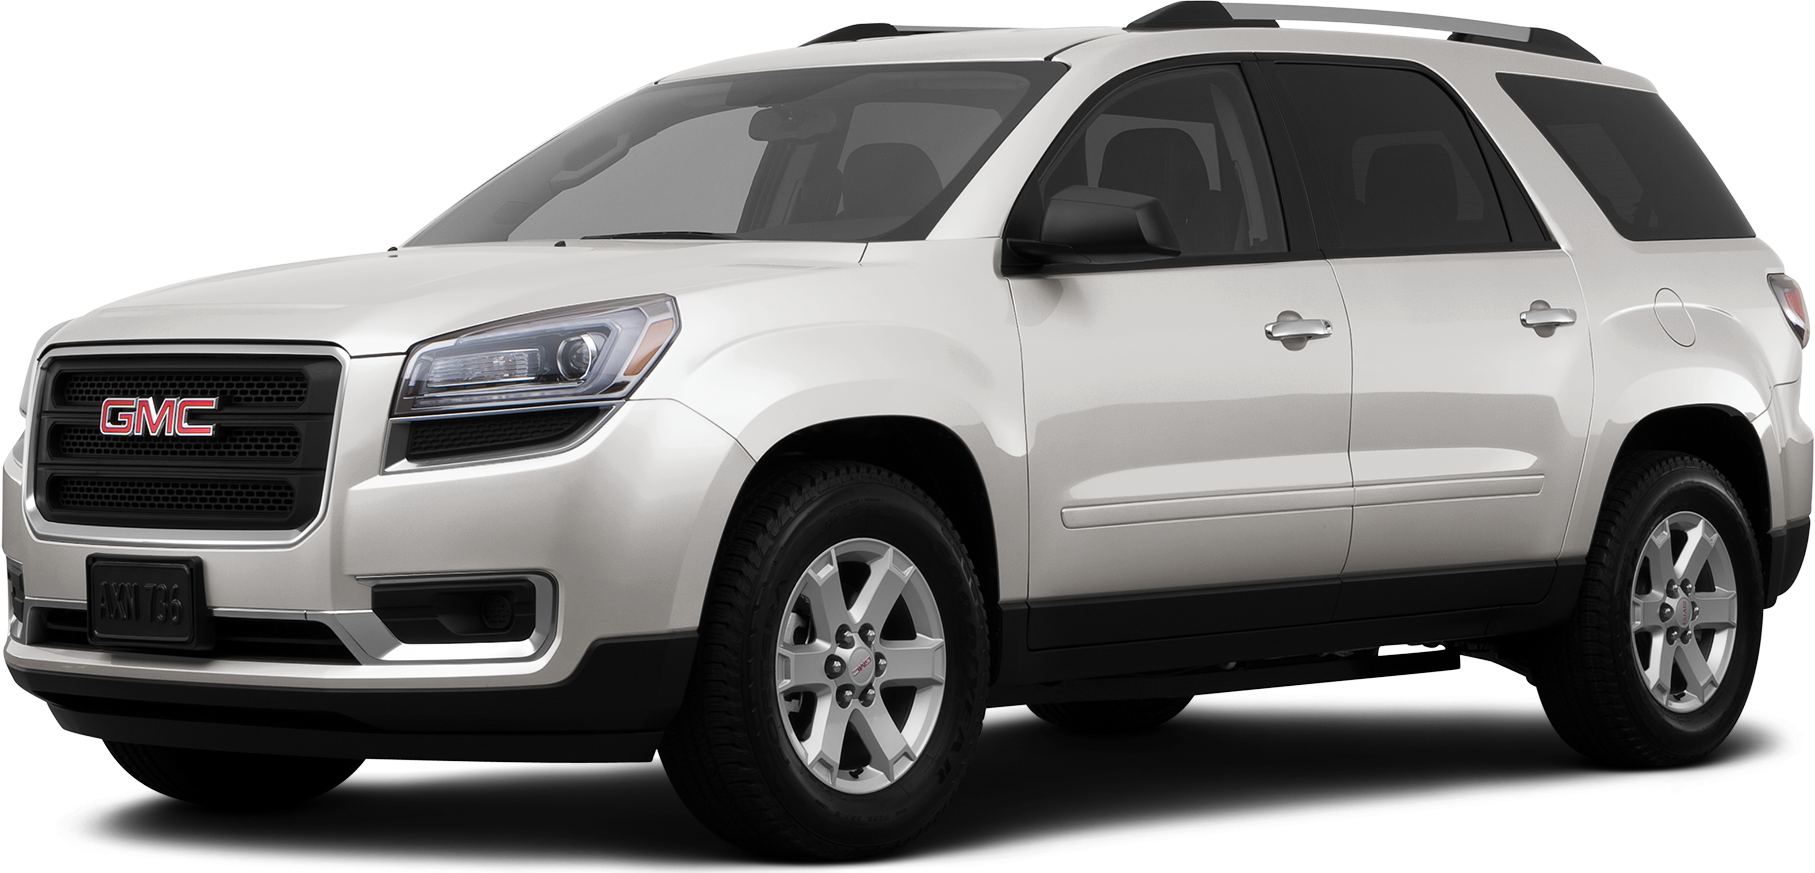 Used 2013 Gmc Acadia Values Cars For Sale Kelley Blue Book